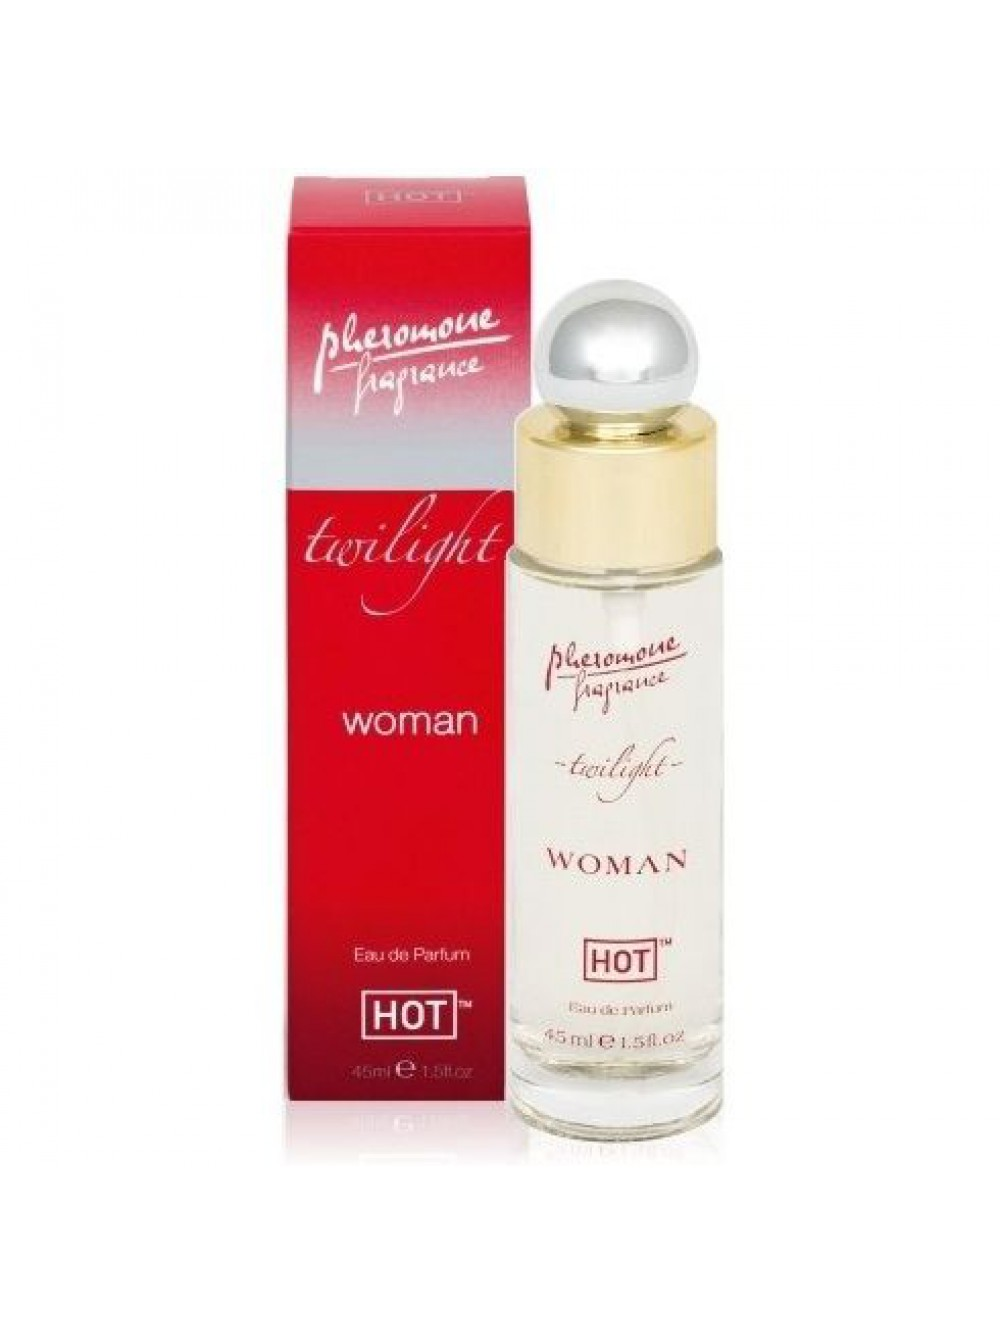 HOTWOMAN PHER. PARFUM TWILIGHT 45ML 4042342000474